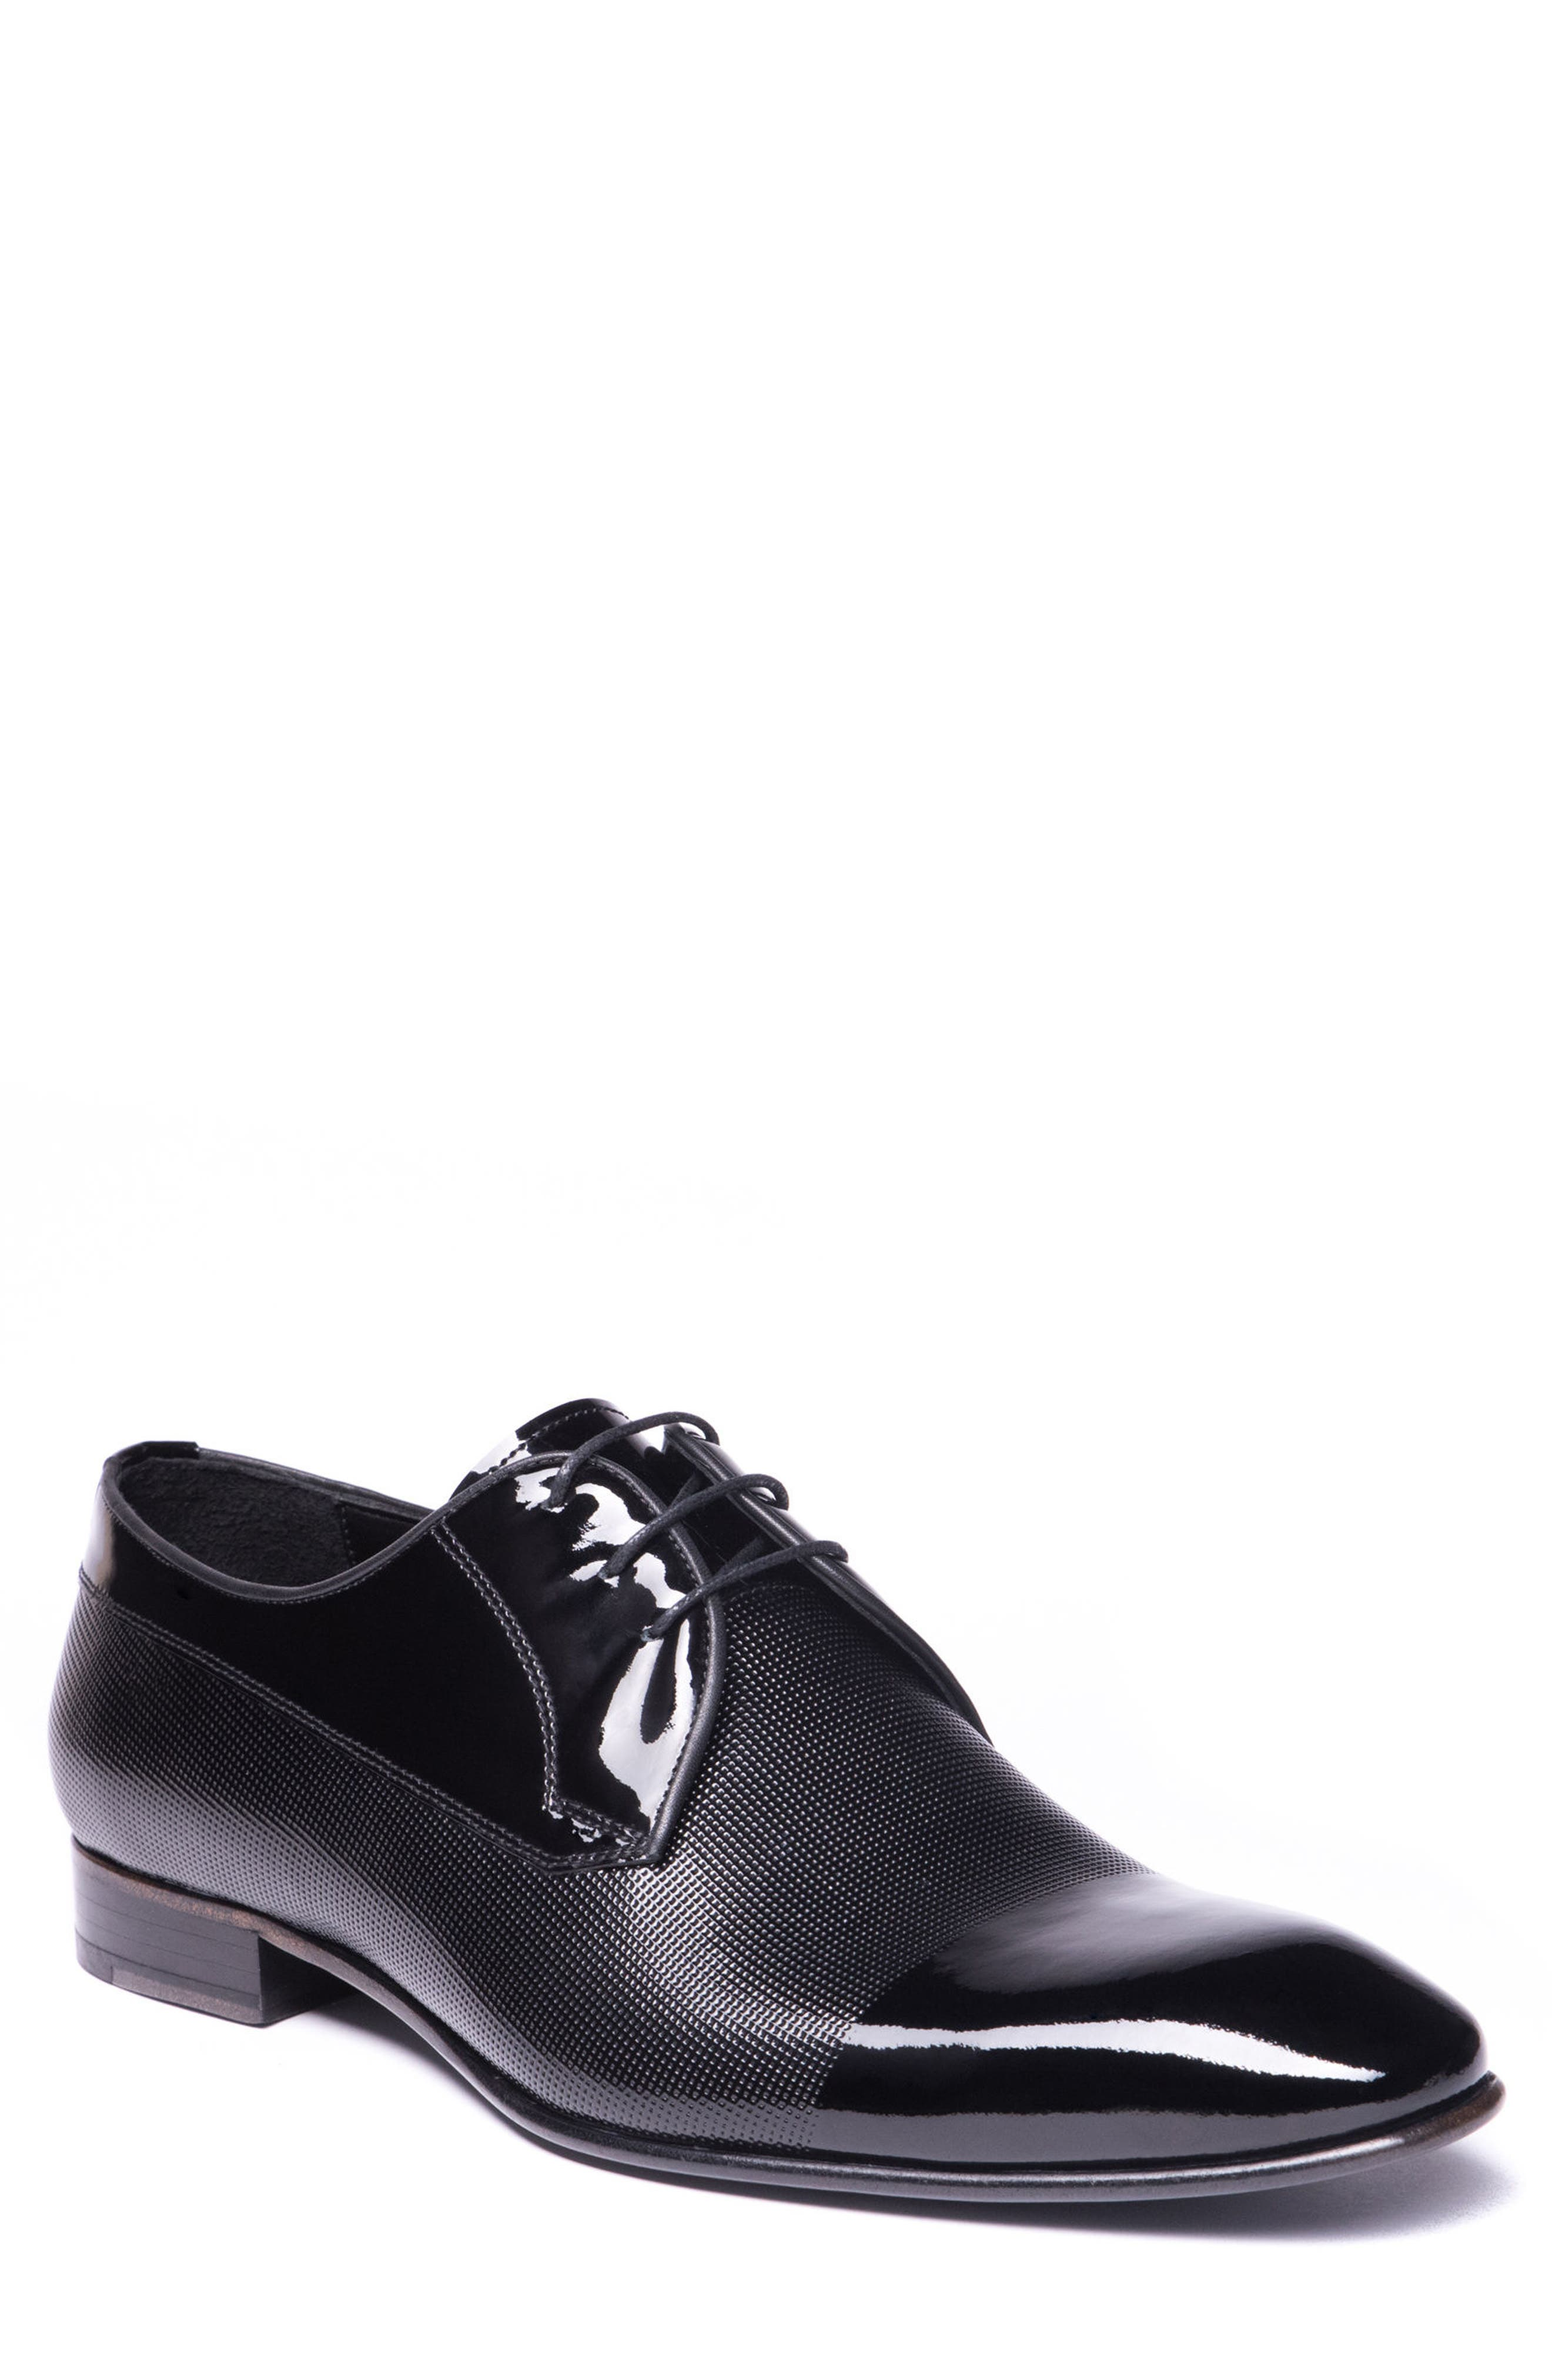 Riccardo Cap Toe Derby,                             Main thumbnail 1, color,                             BLACK LEATHER